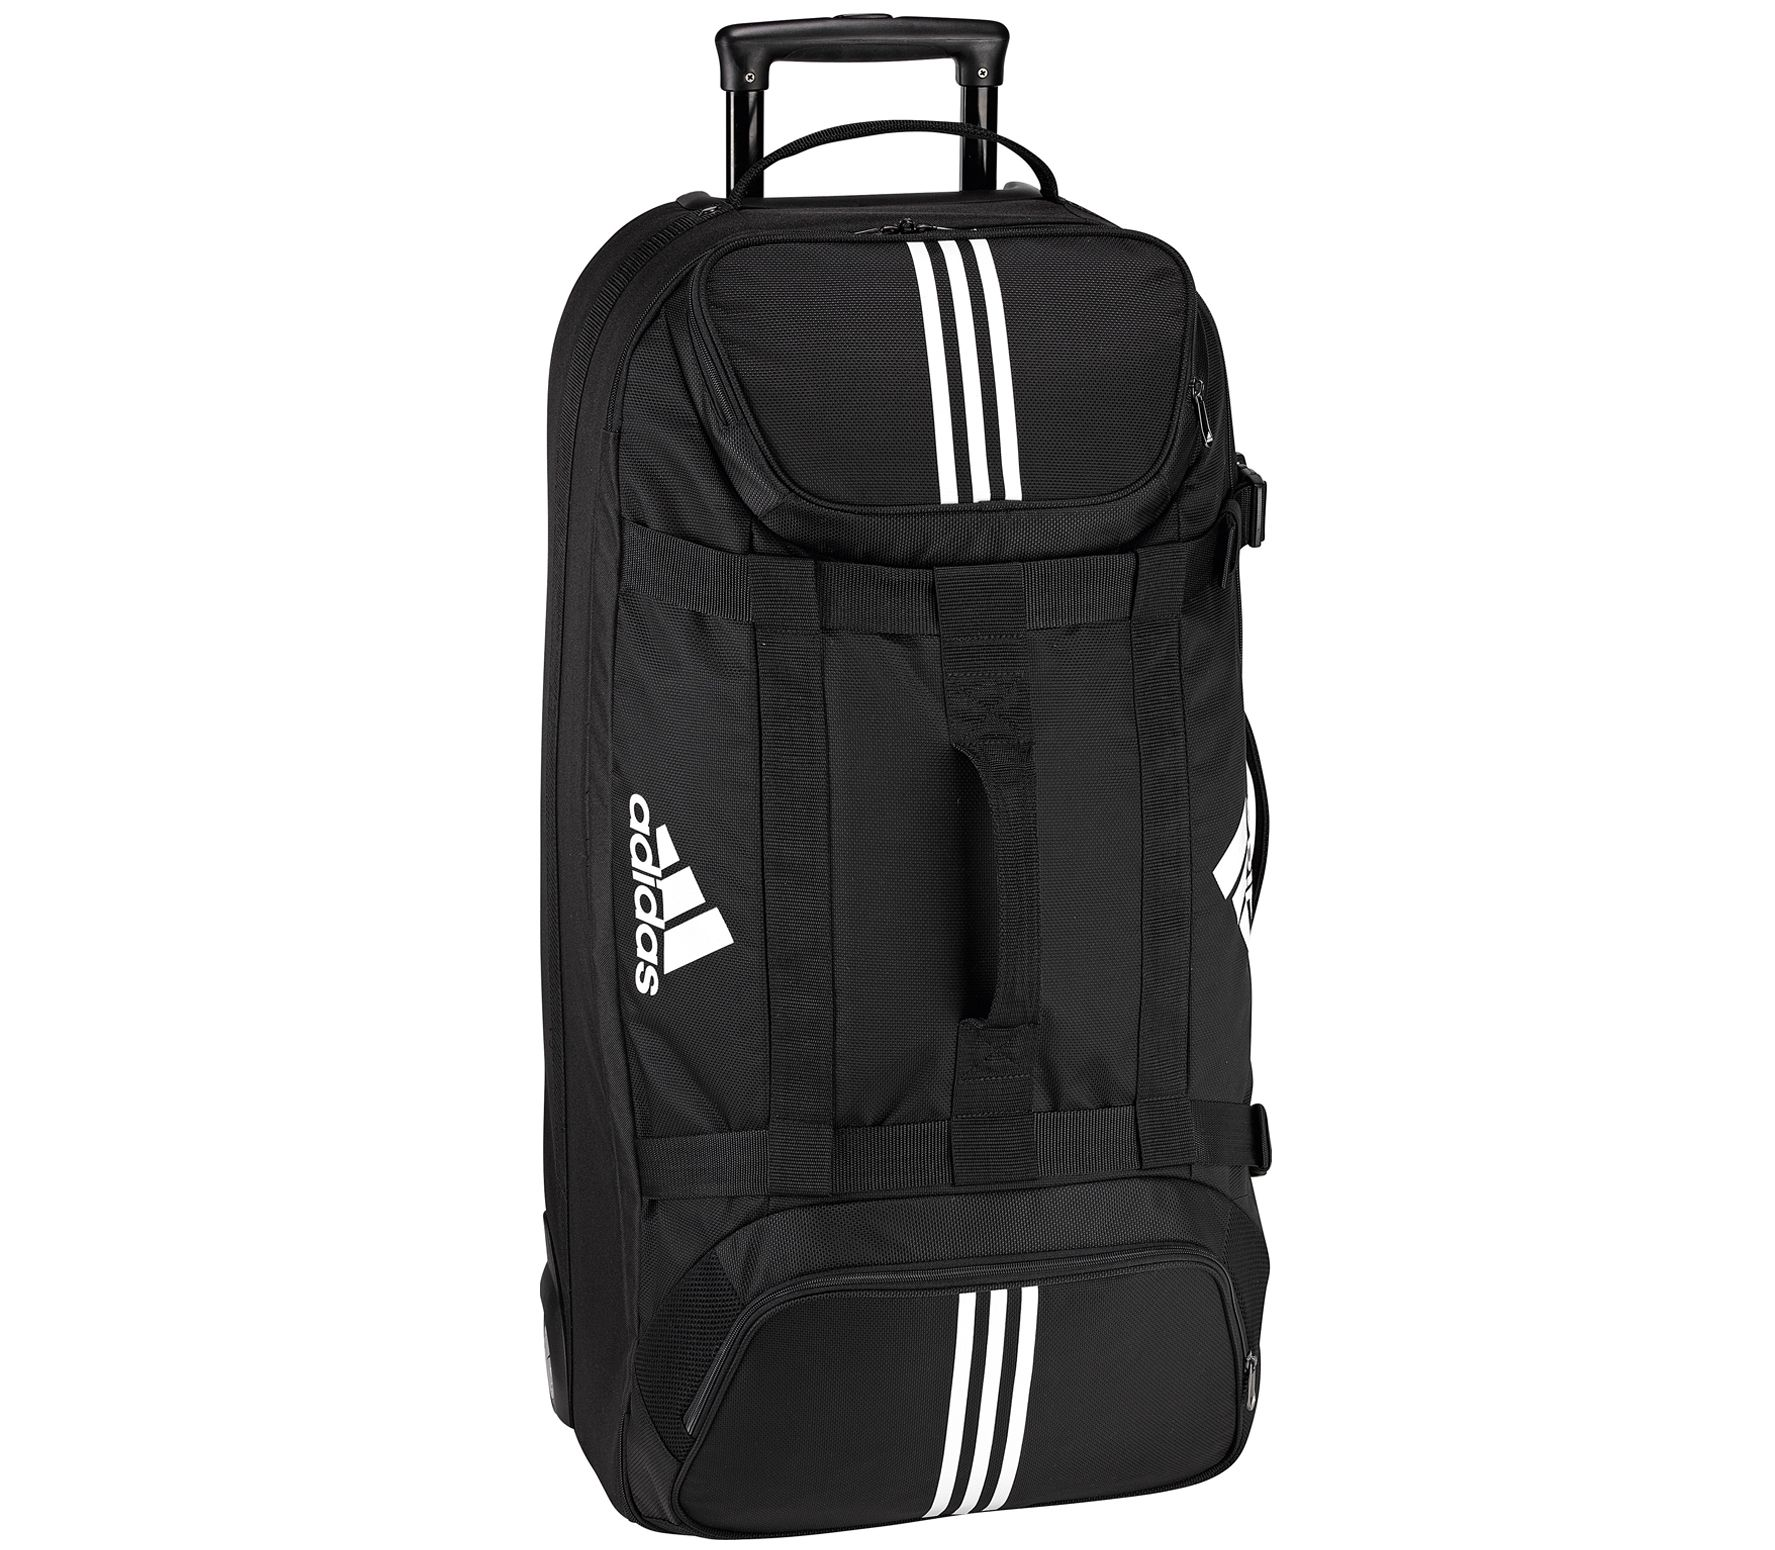 Adidas - Team Travel Trolley S black - HW12 tennis bags small bags from  Adidas